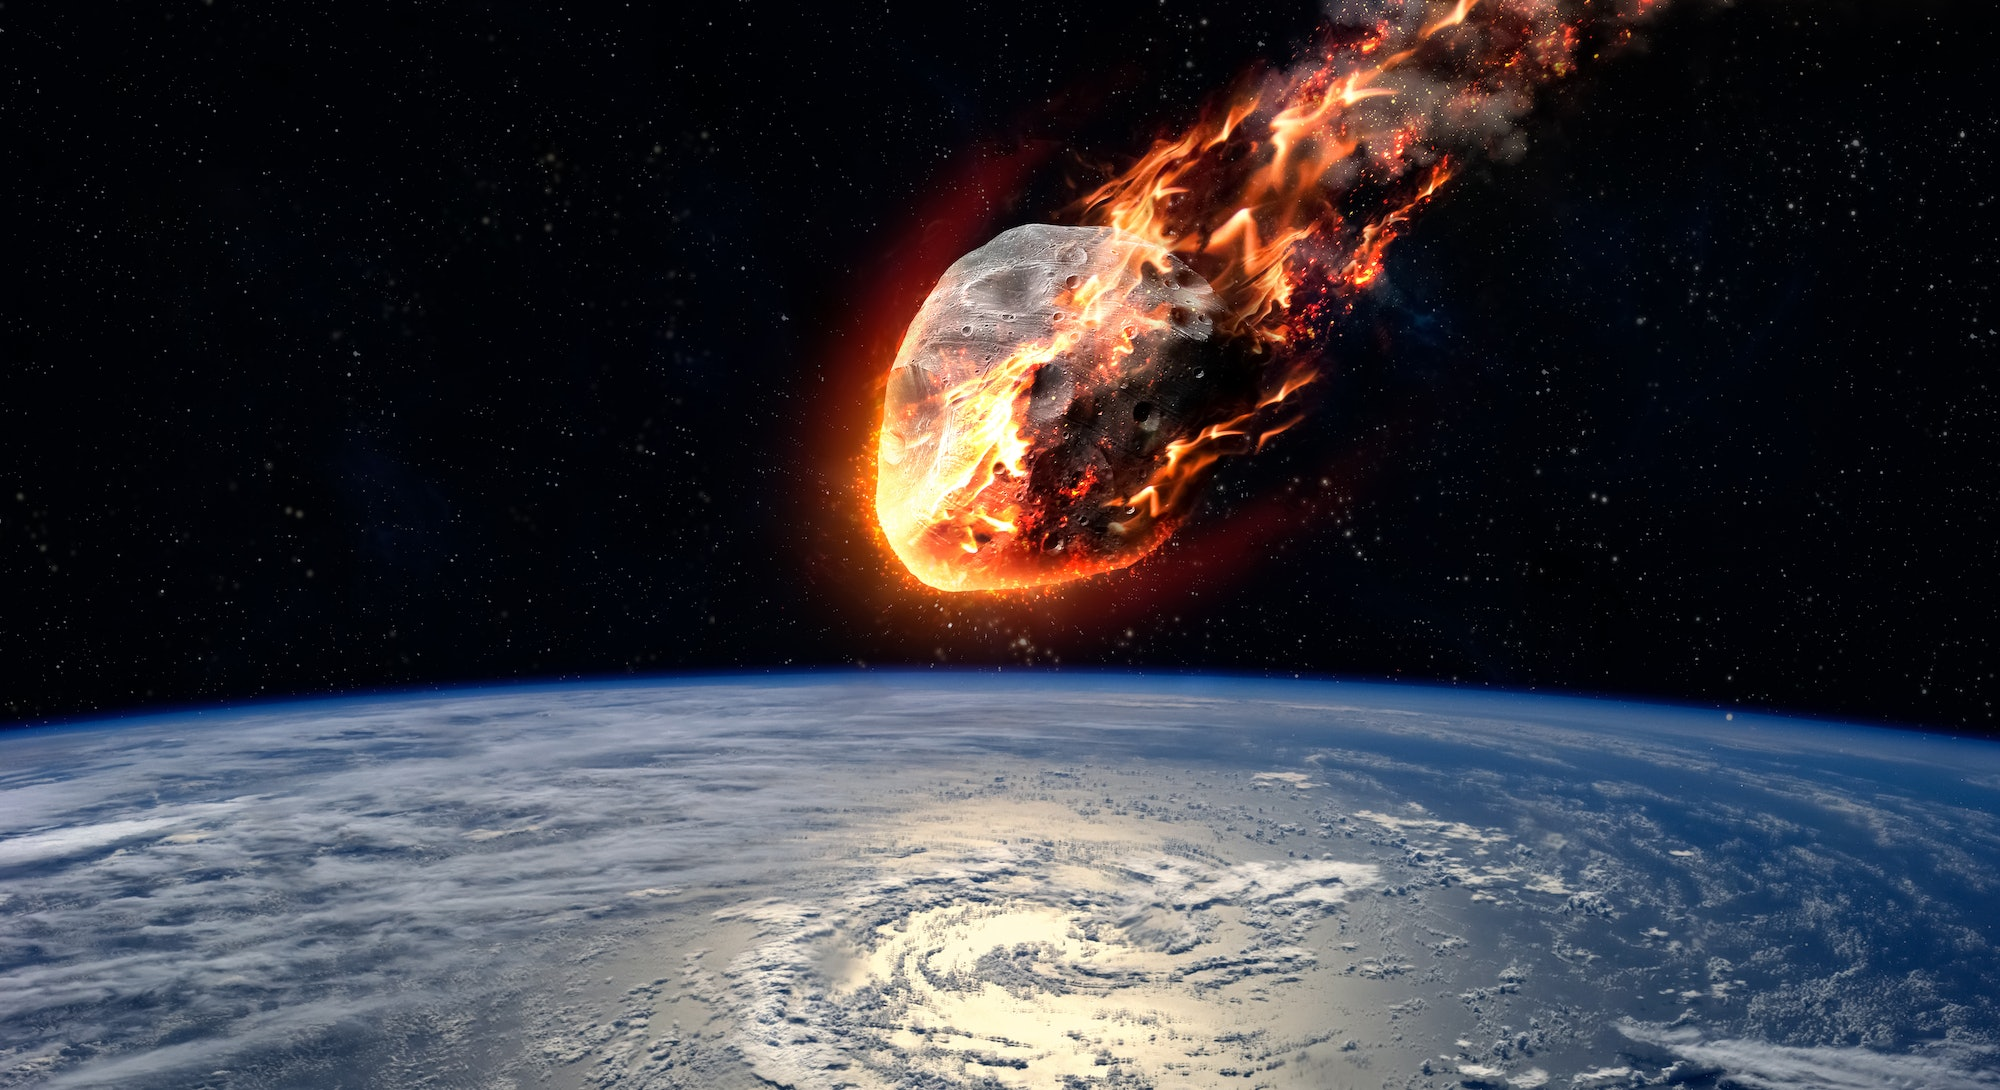 A Meteor glowing as it enters the Earth's atmosphere. Elements of this image furnished by NASA